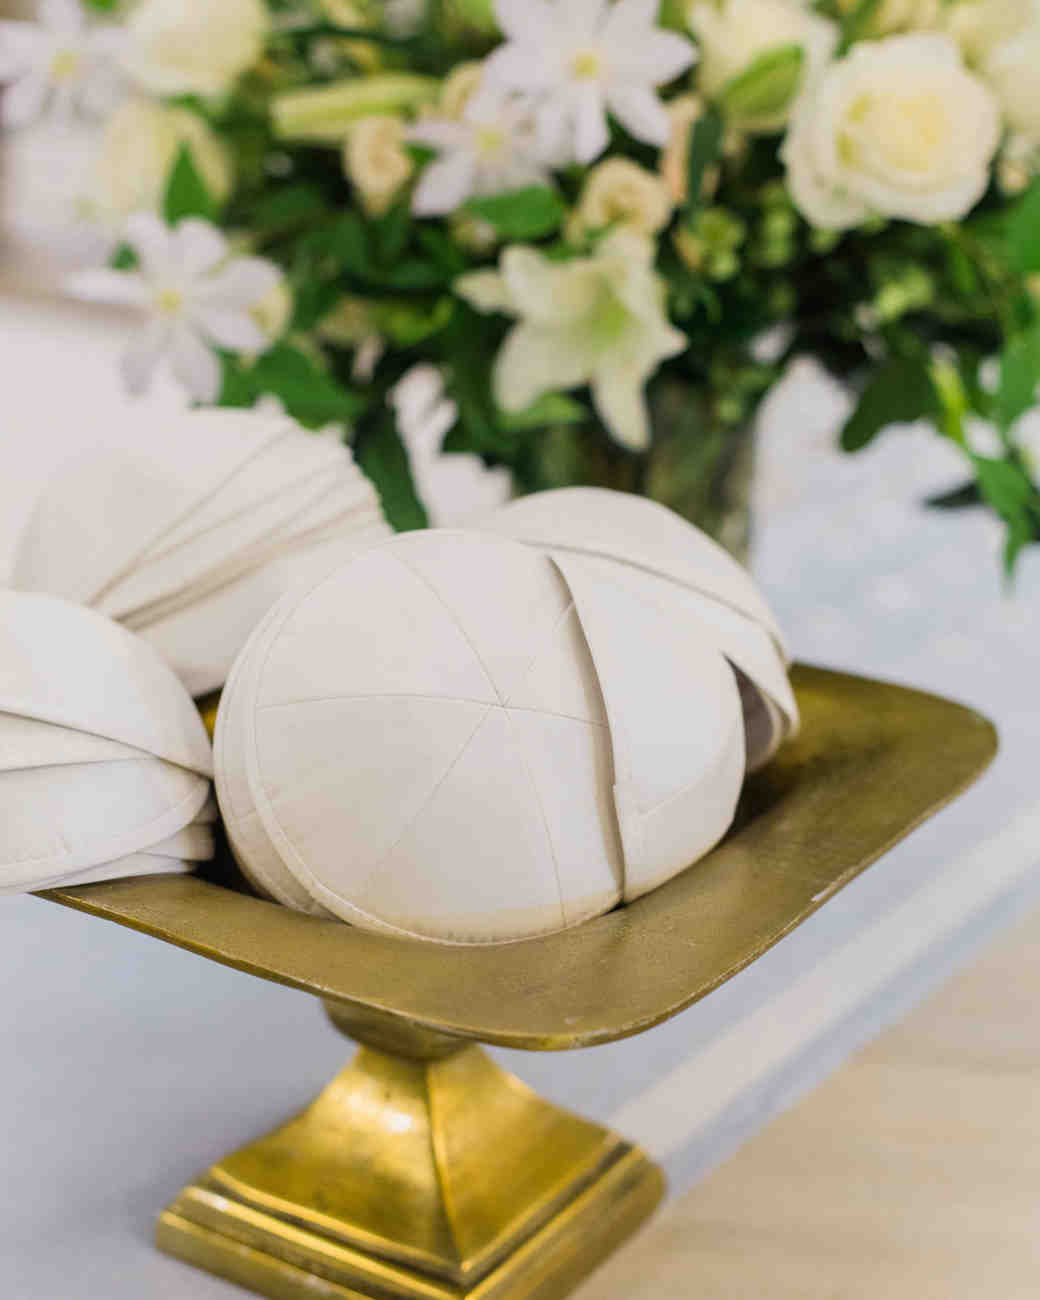 all-white yarmulkes on gold stand next to flowers